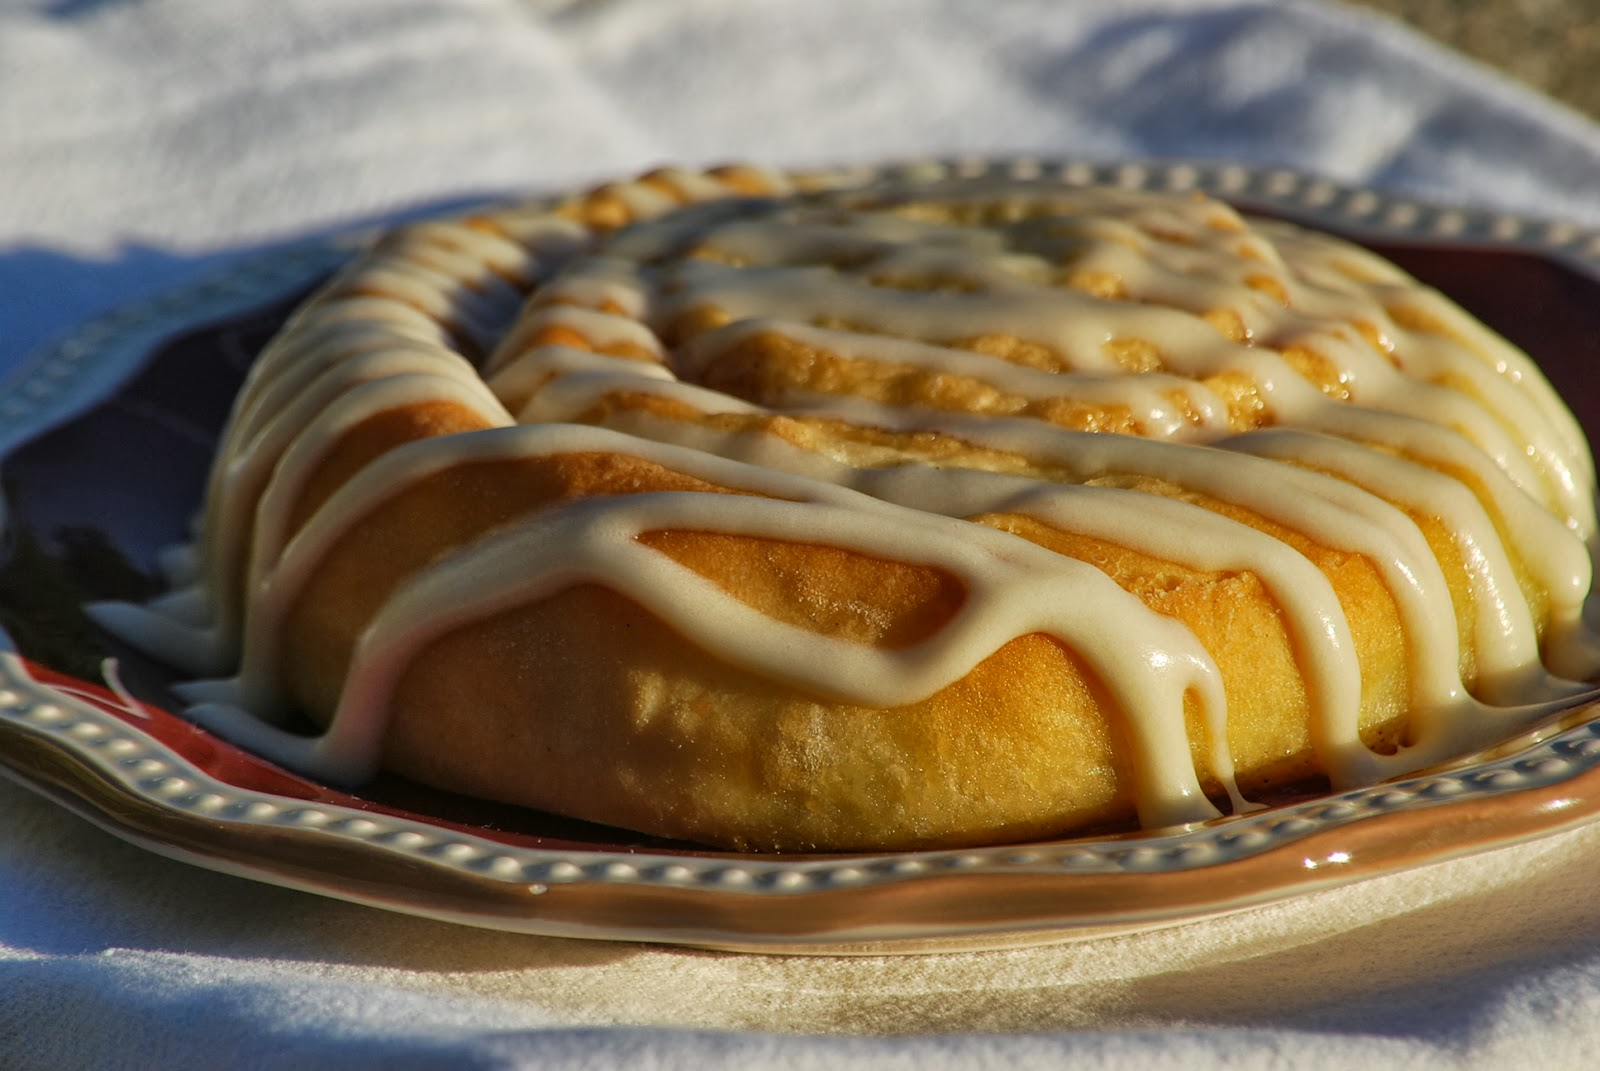 My story in recipes: Quick Cinnamon Rolls